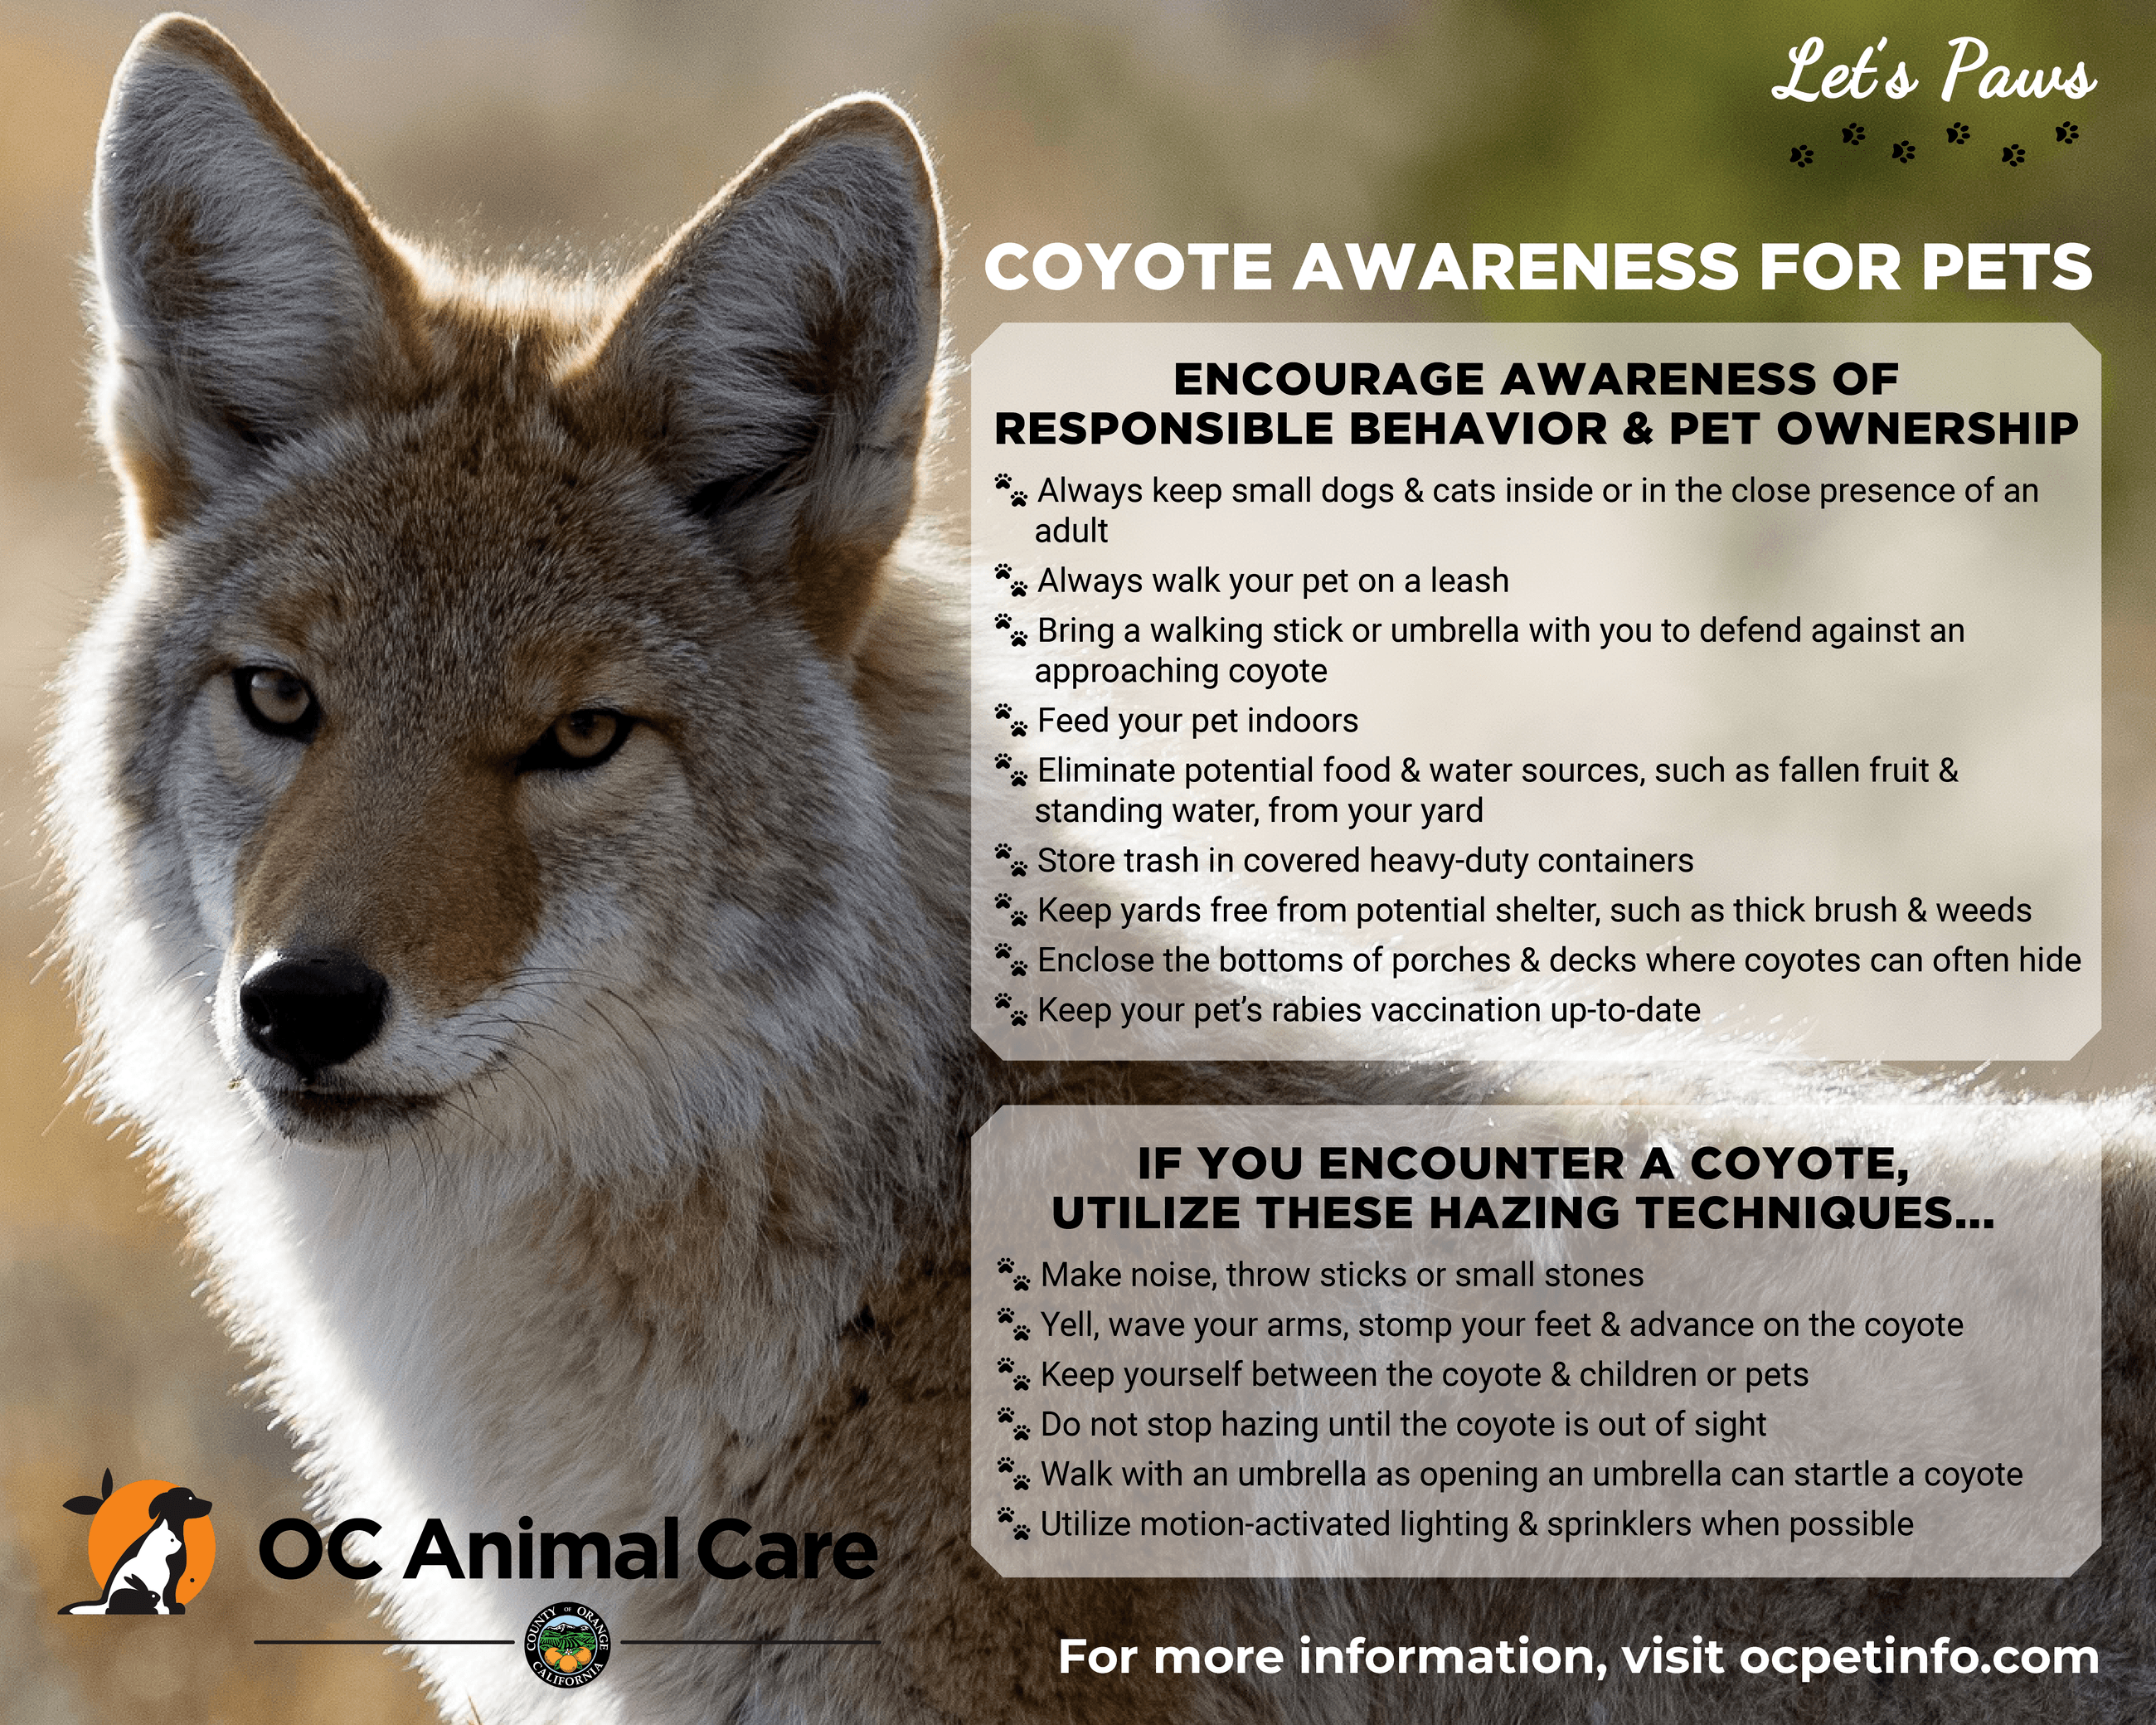 OC Animal Care Coyotes Awareness